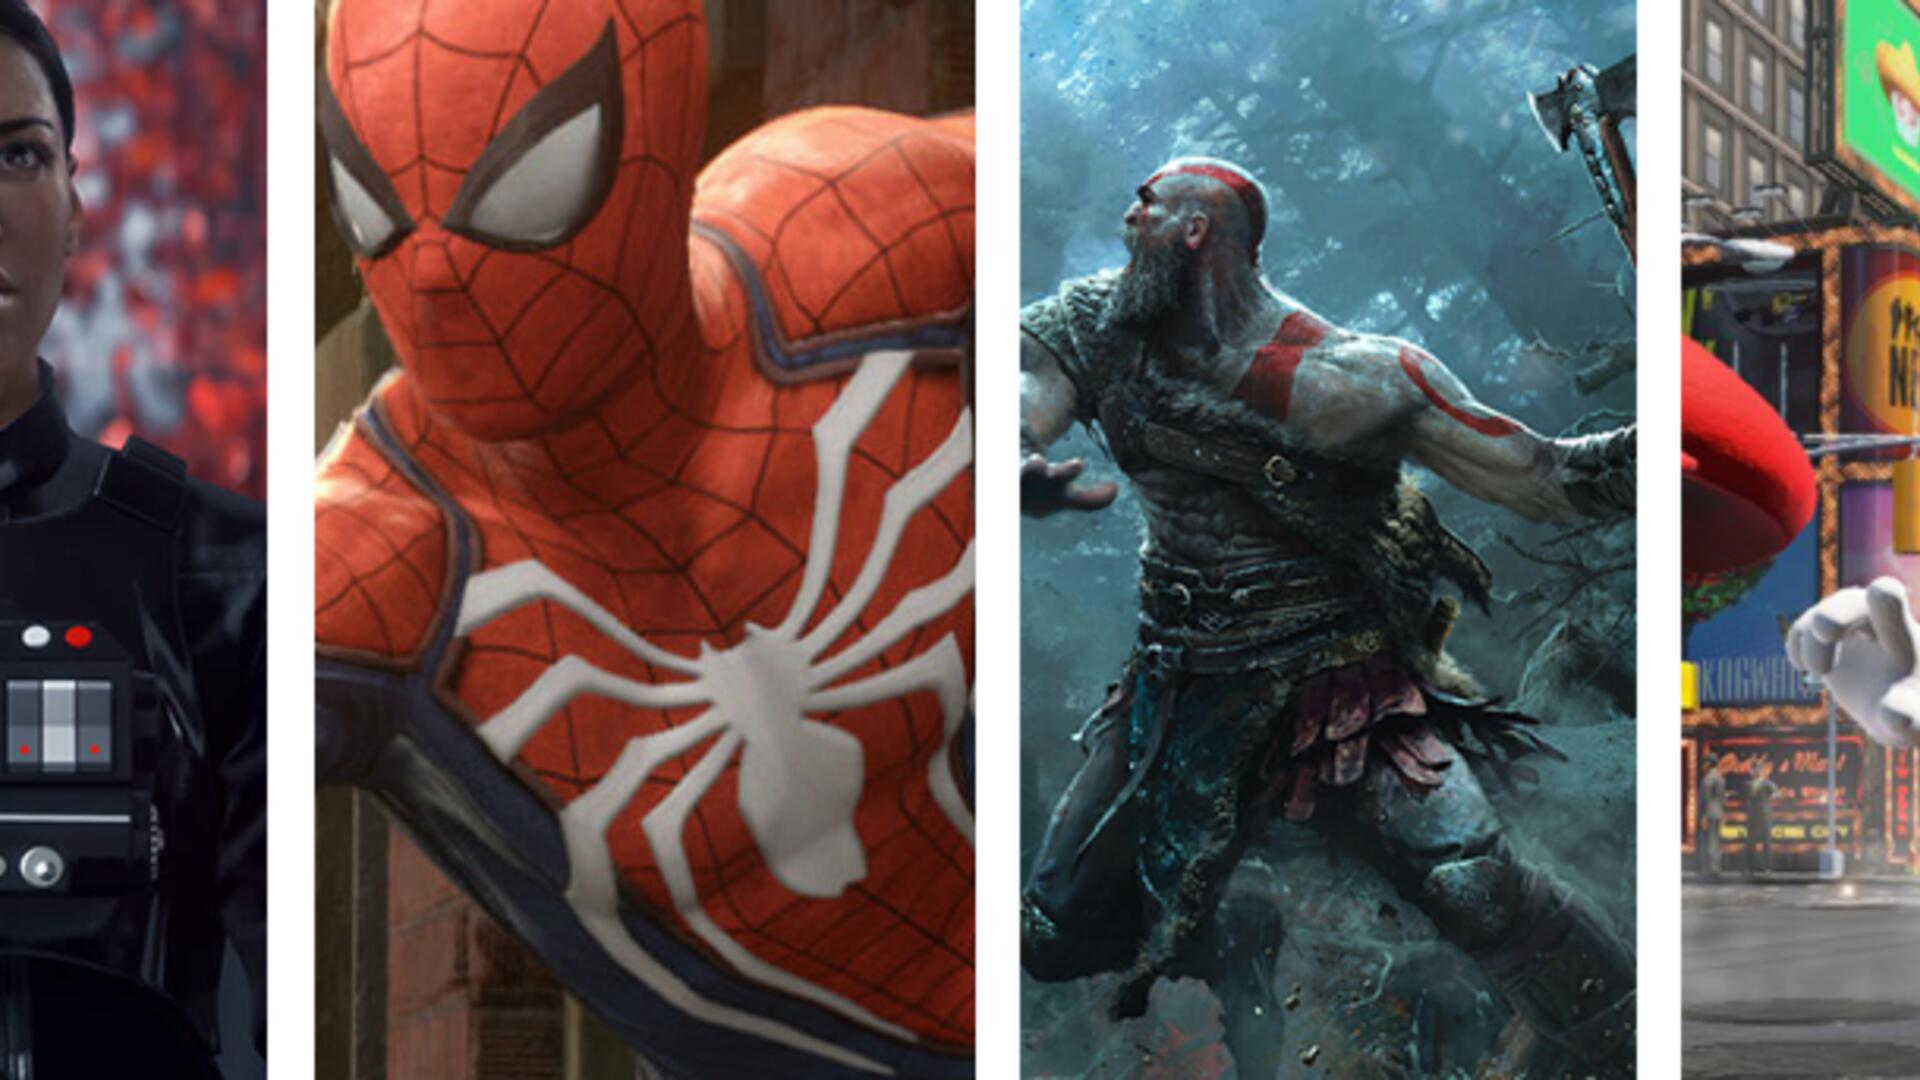 E3 2017 Preview: The 10 Biggest Games to Watch For